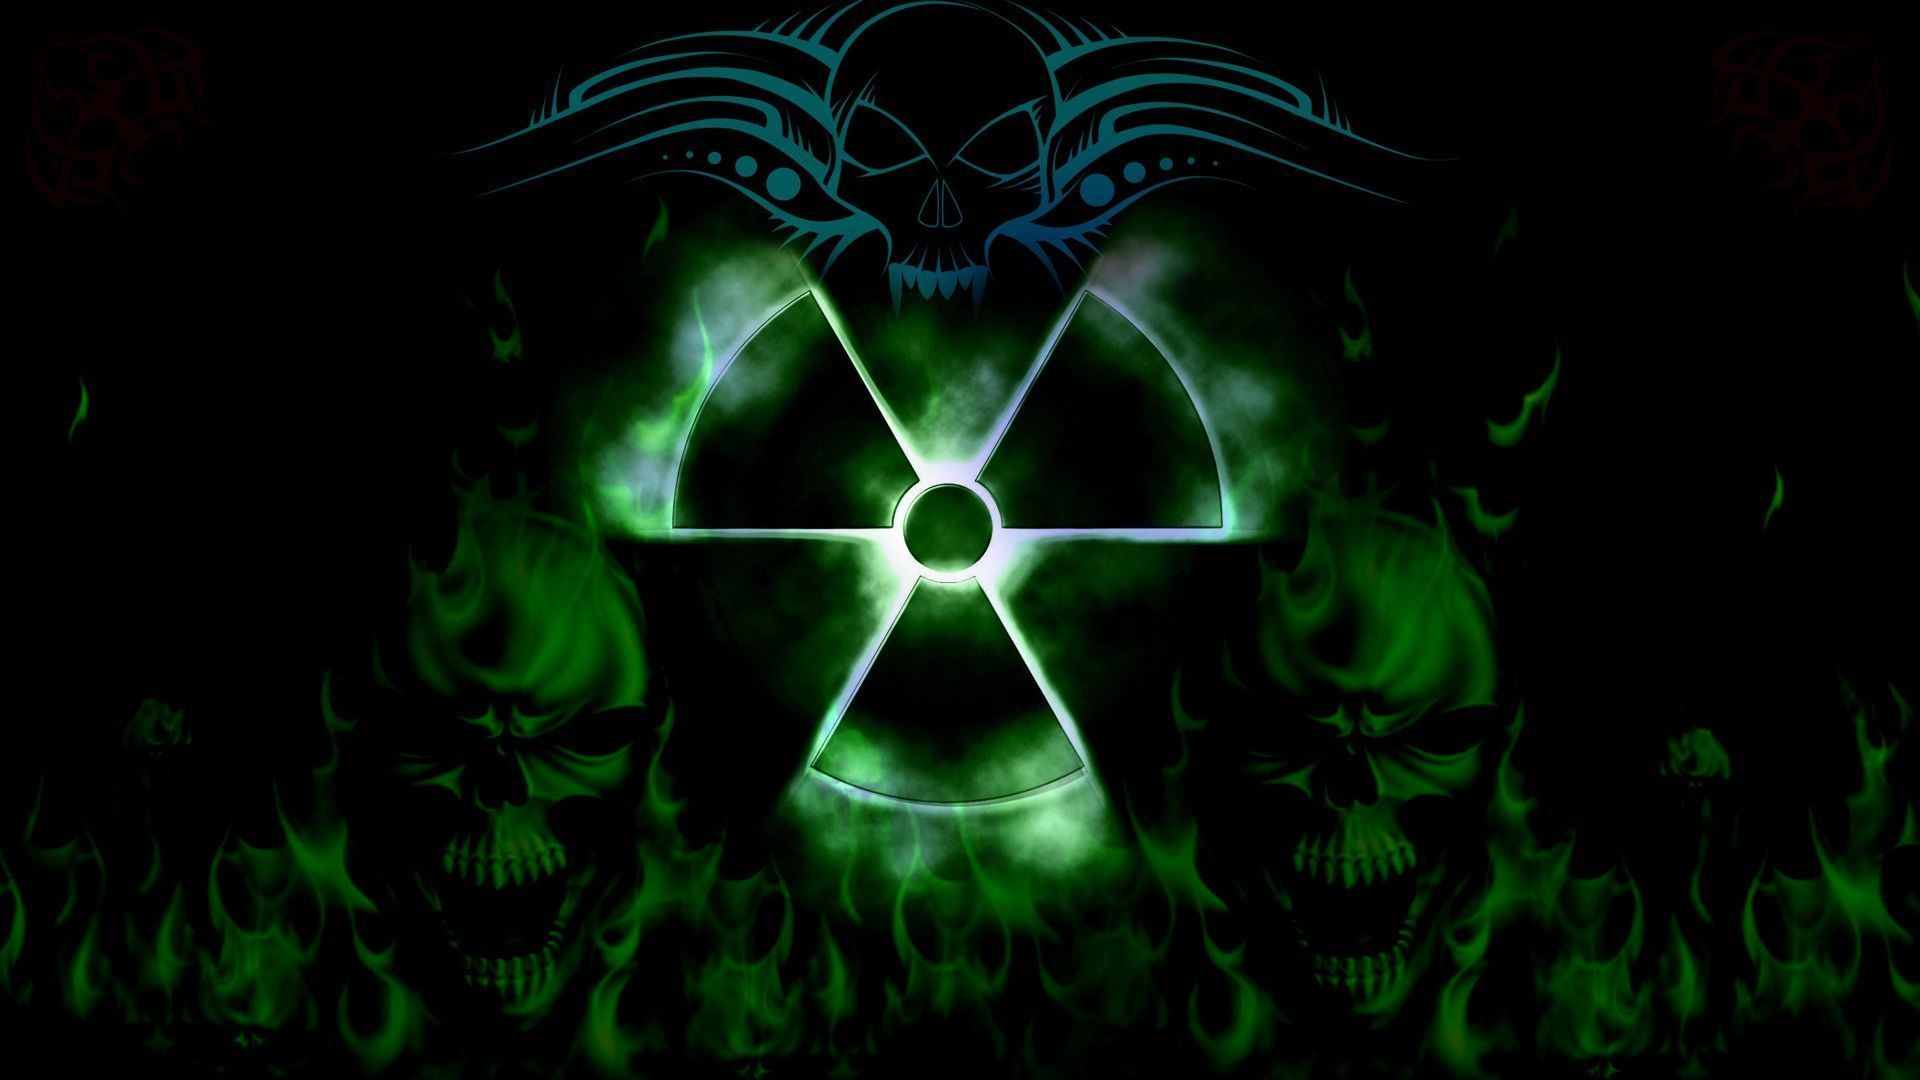 Cool pics of skull wallpaper hd wallpapers pinterest skull radioactive full hd wallpaper and background x id voltagebd Choice Image